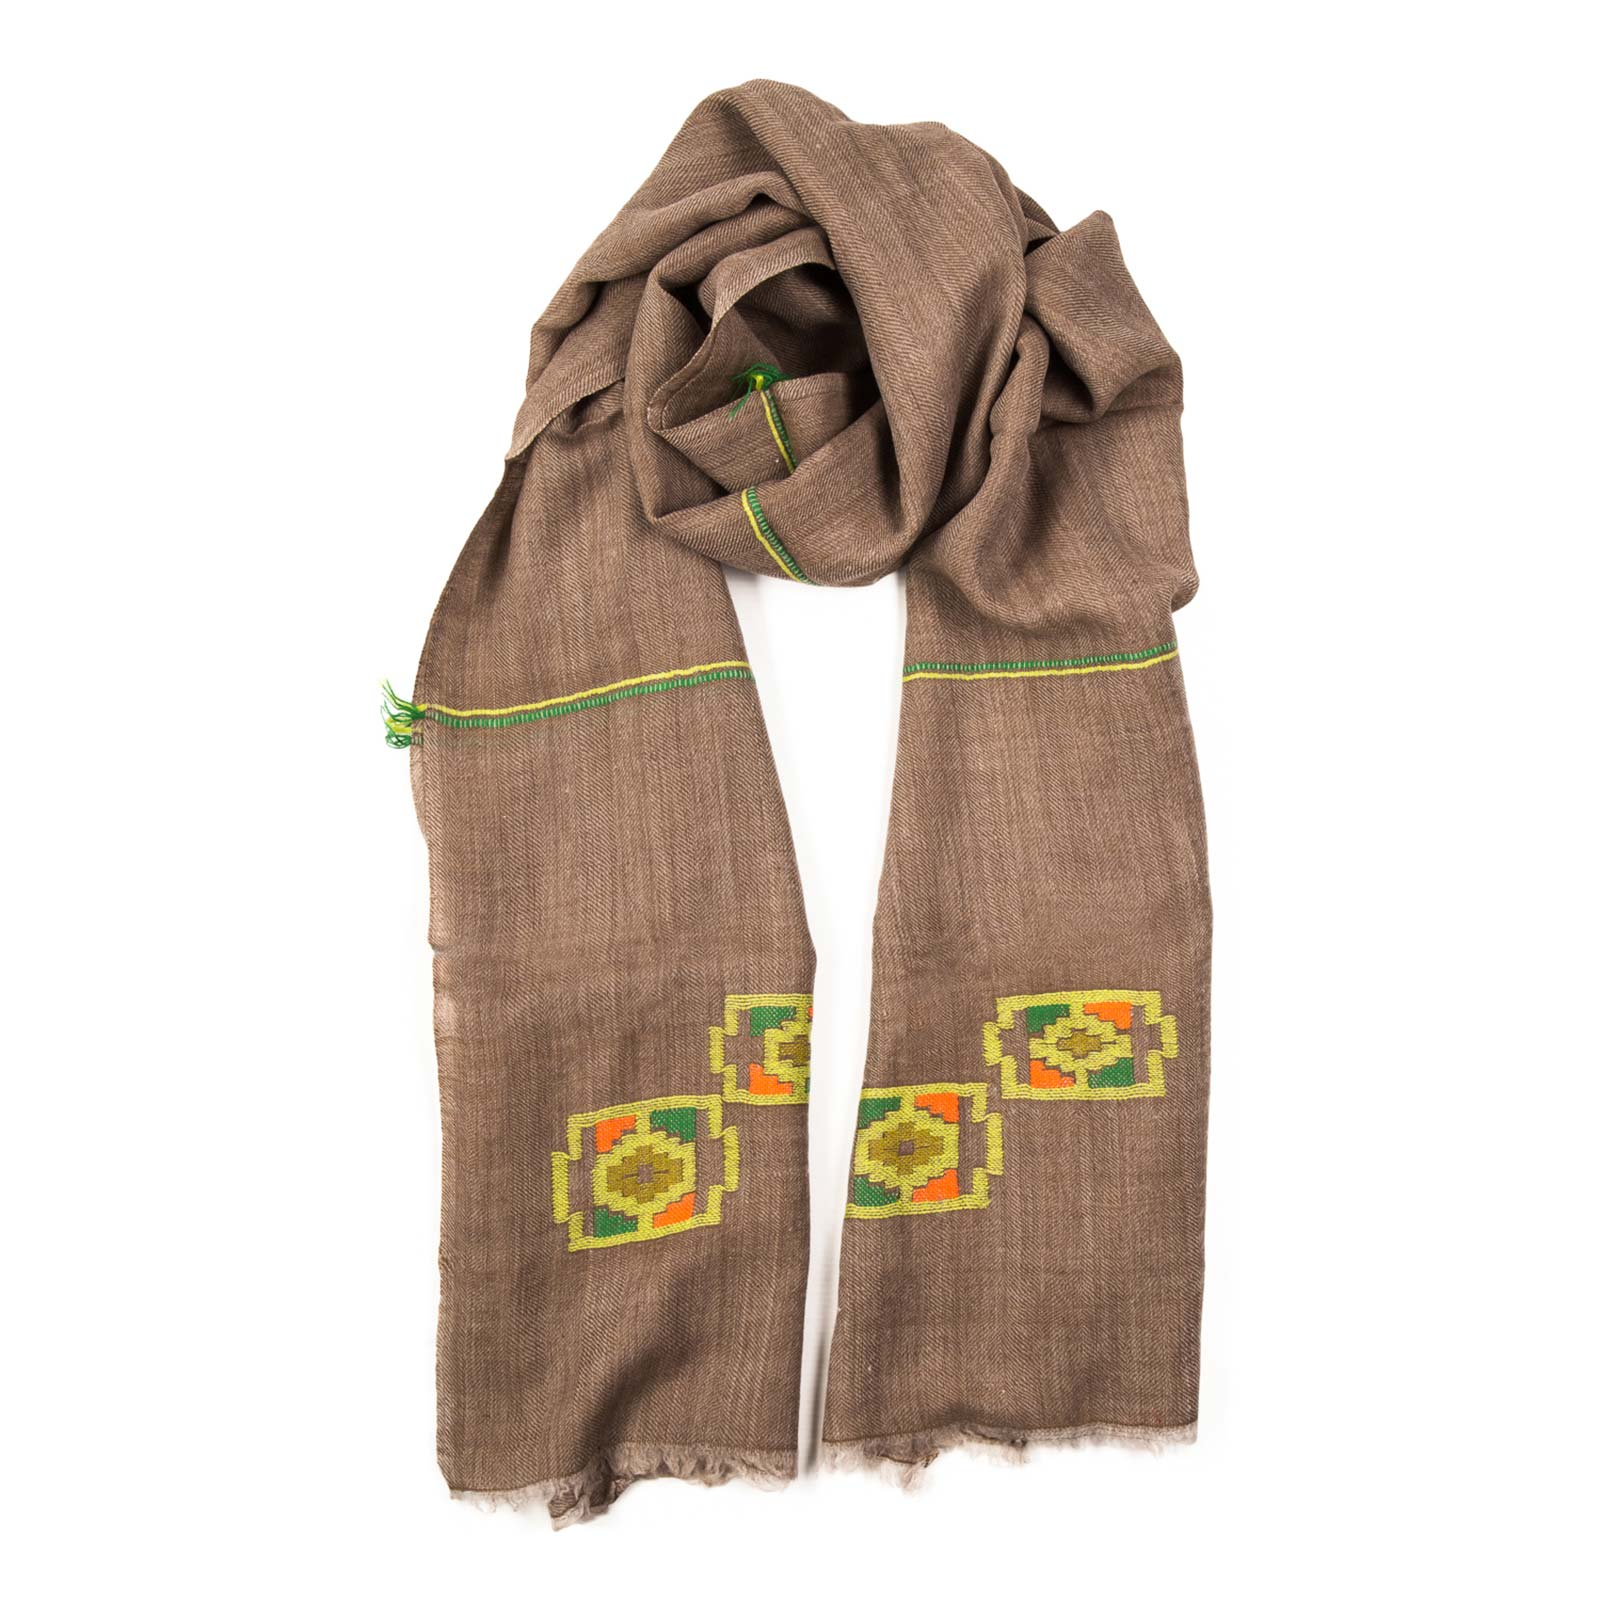 Pluto hand woven shawl bursts with neon color set on a natural background. Hand woven and luxurious lightweight Pashmina. It can be styled in a number of ways with a generous width and length. From Beshlie Mckelvie.